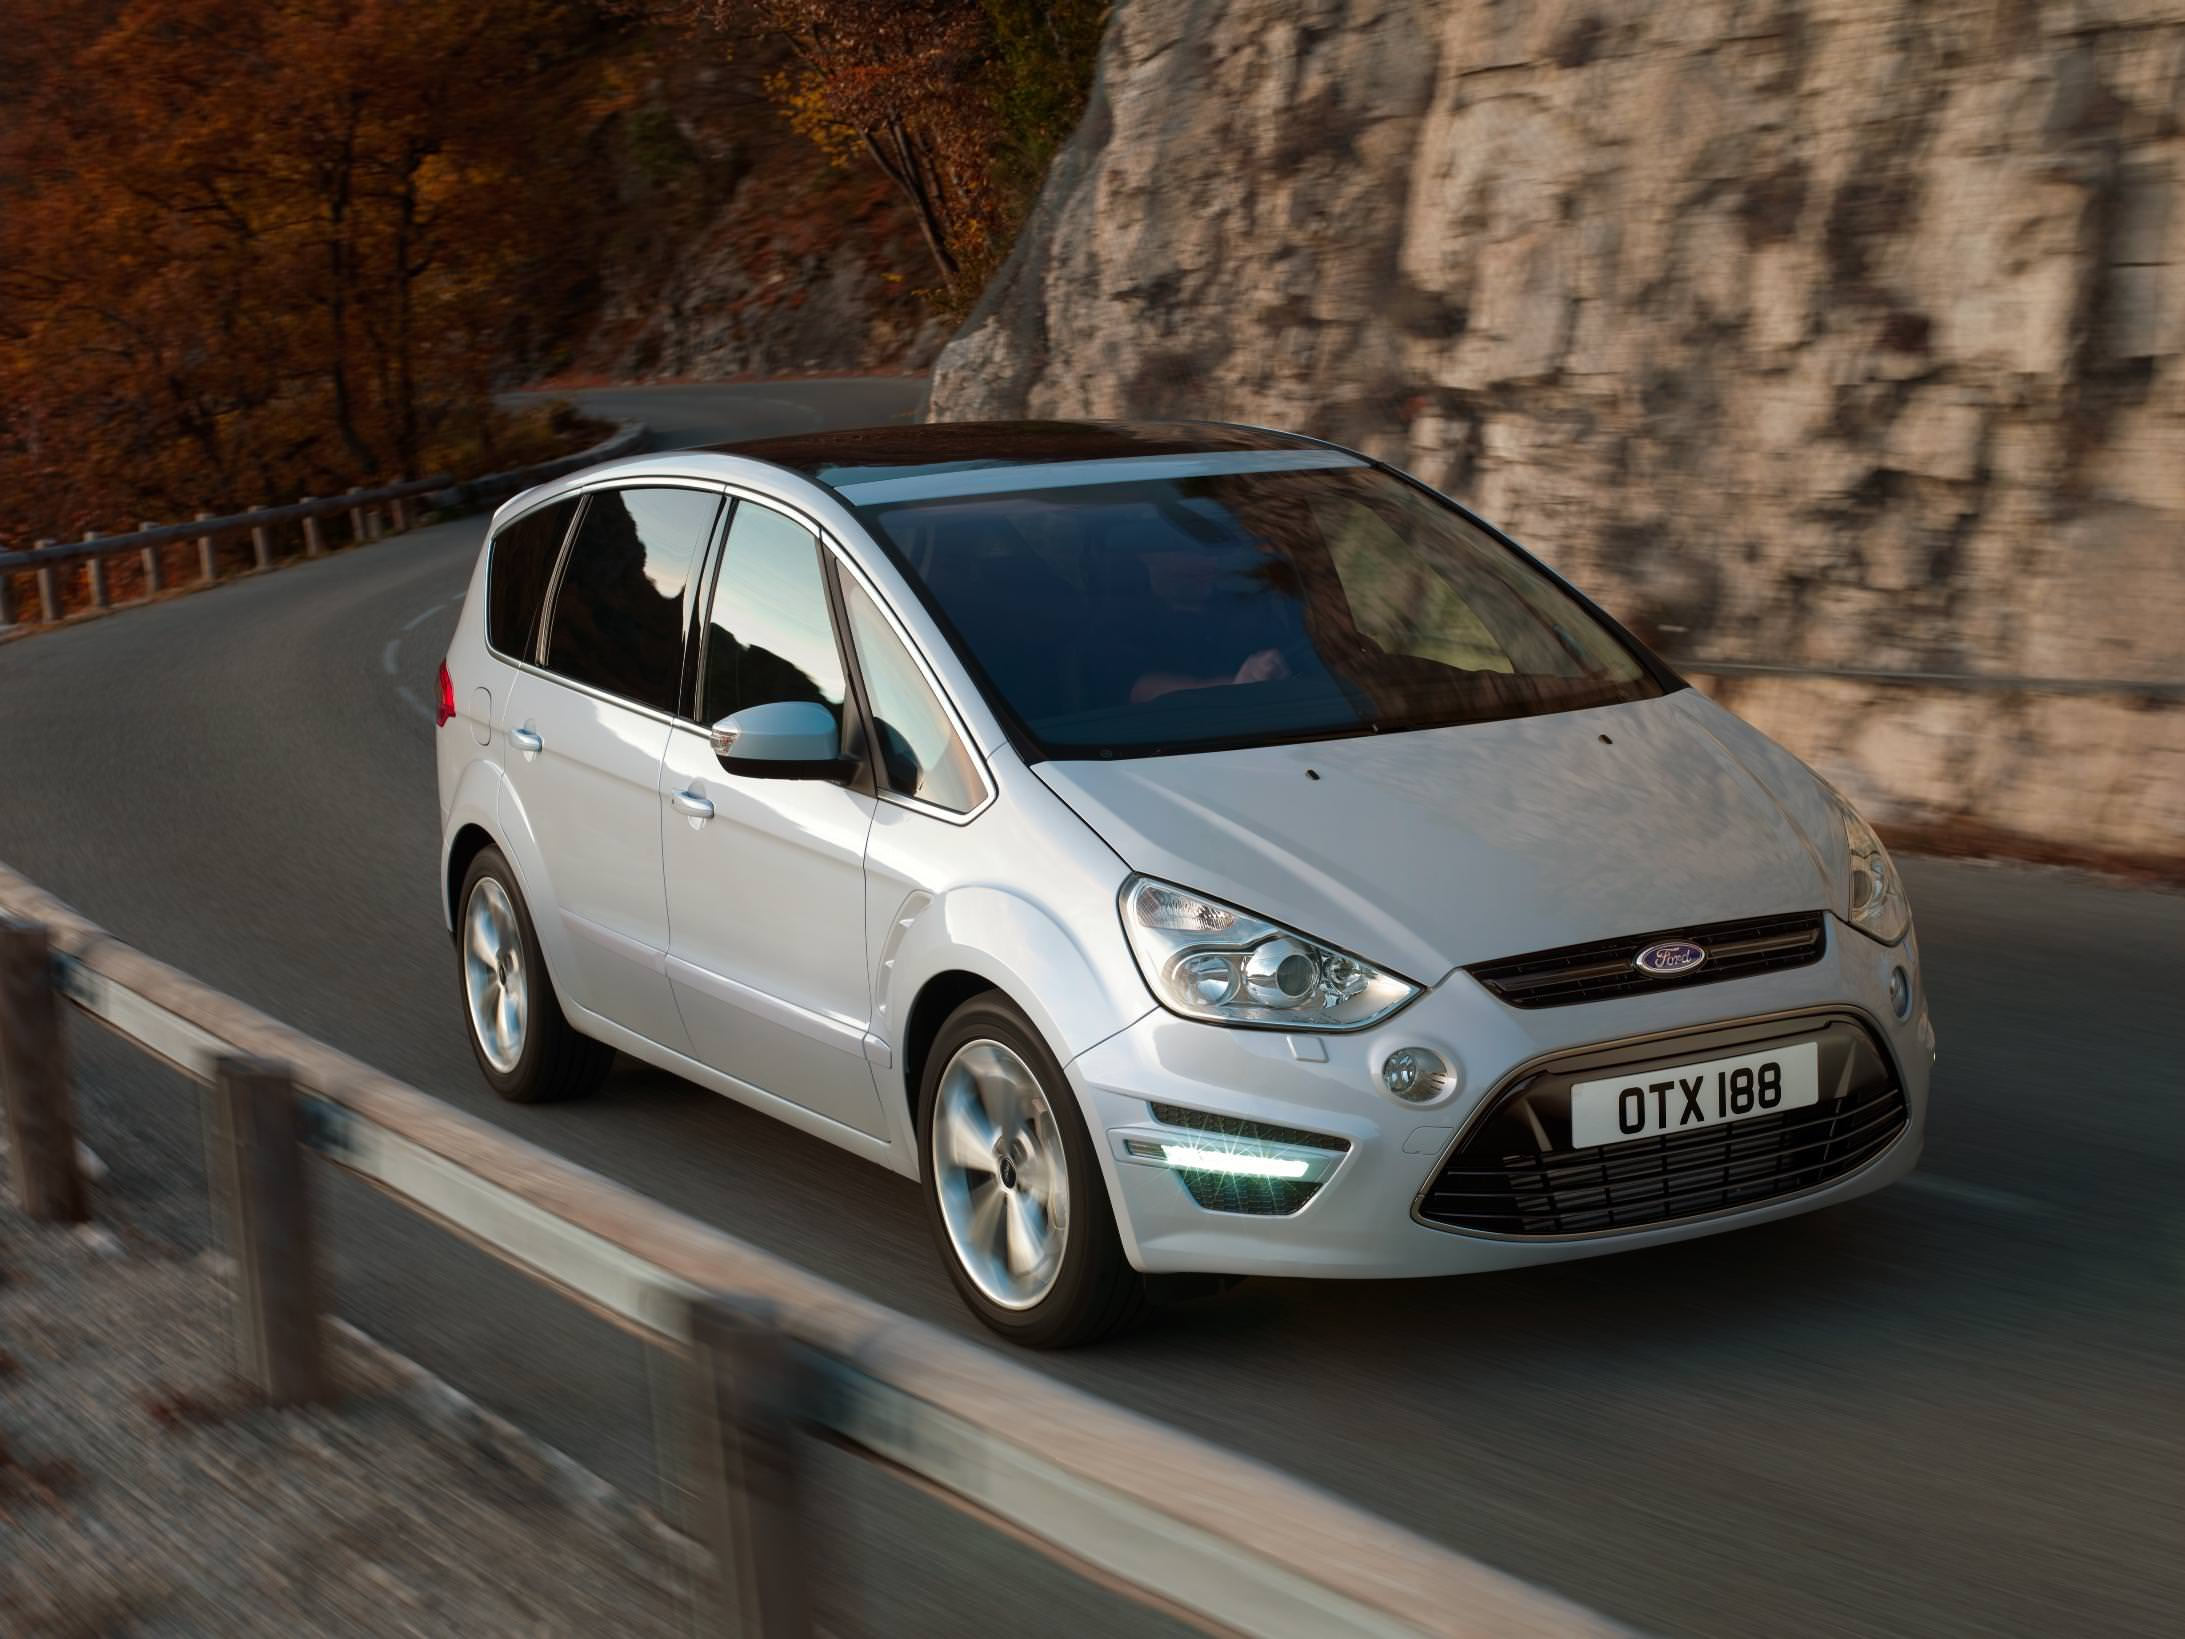 Silver Ford S-Max Driving aon mountain road